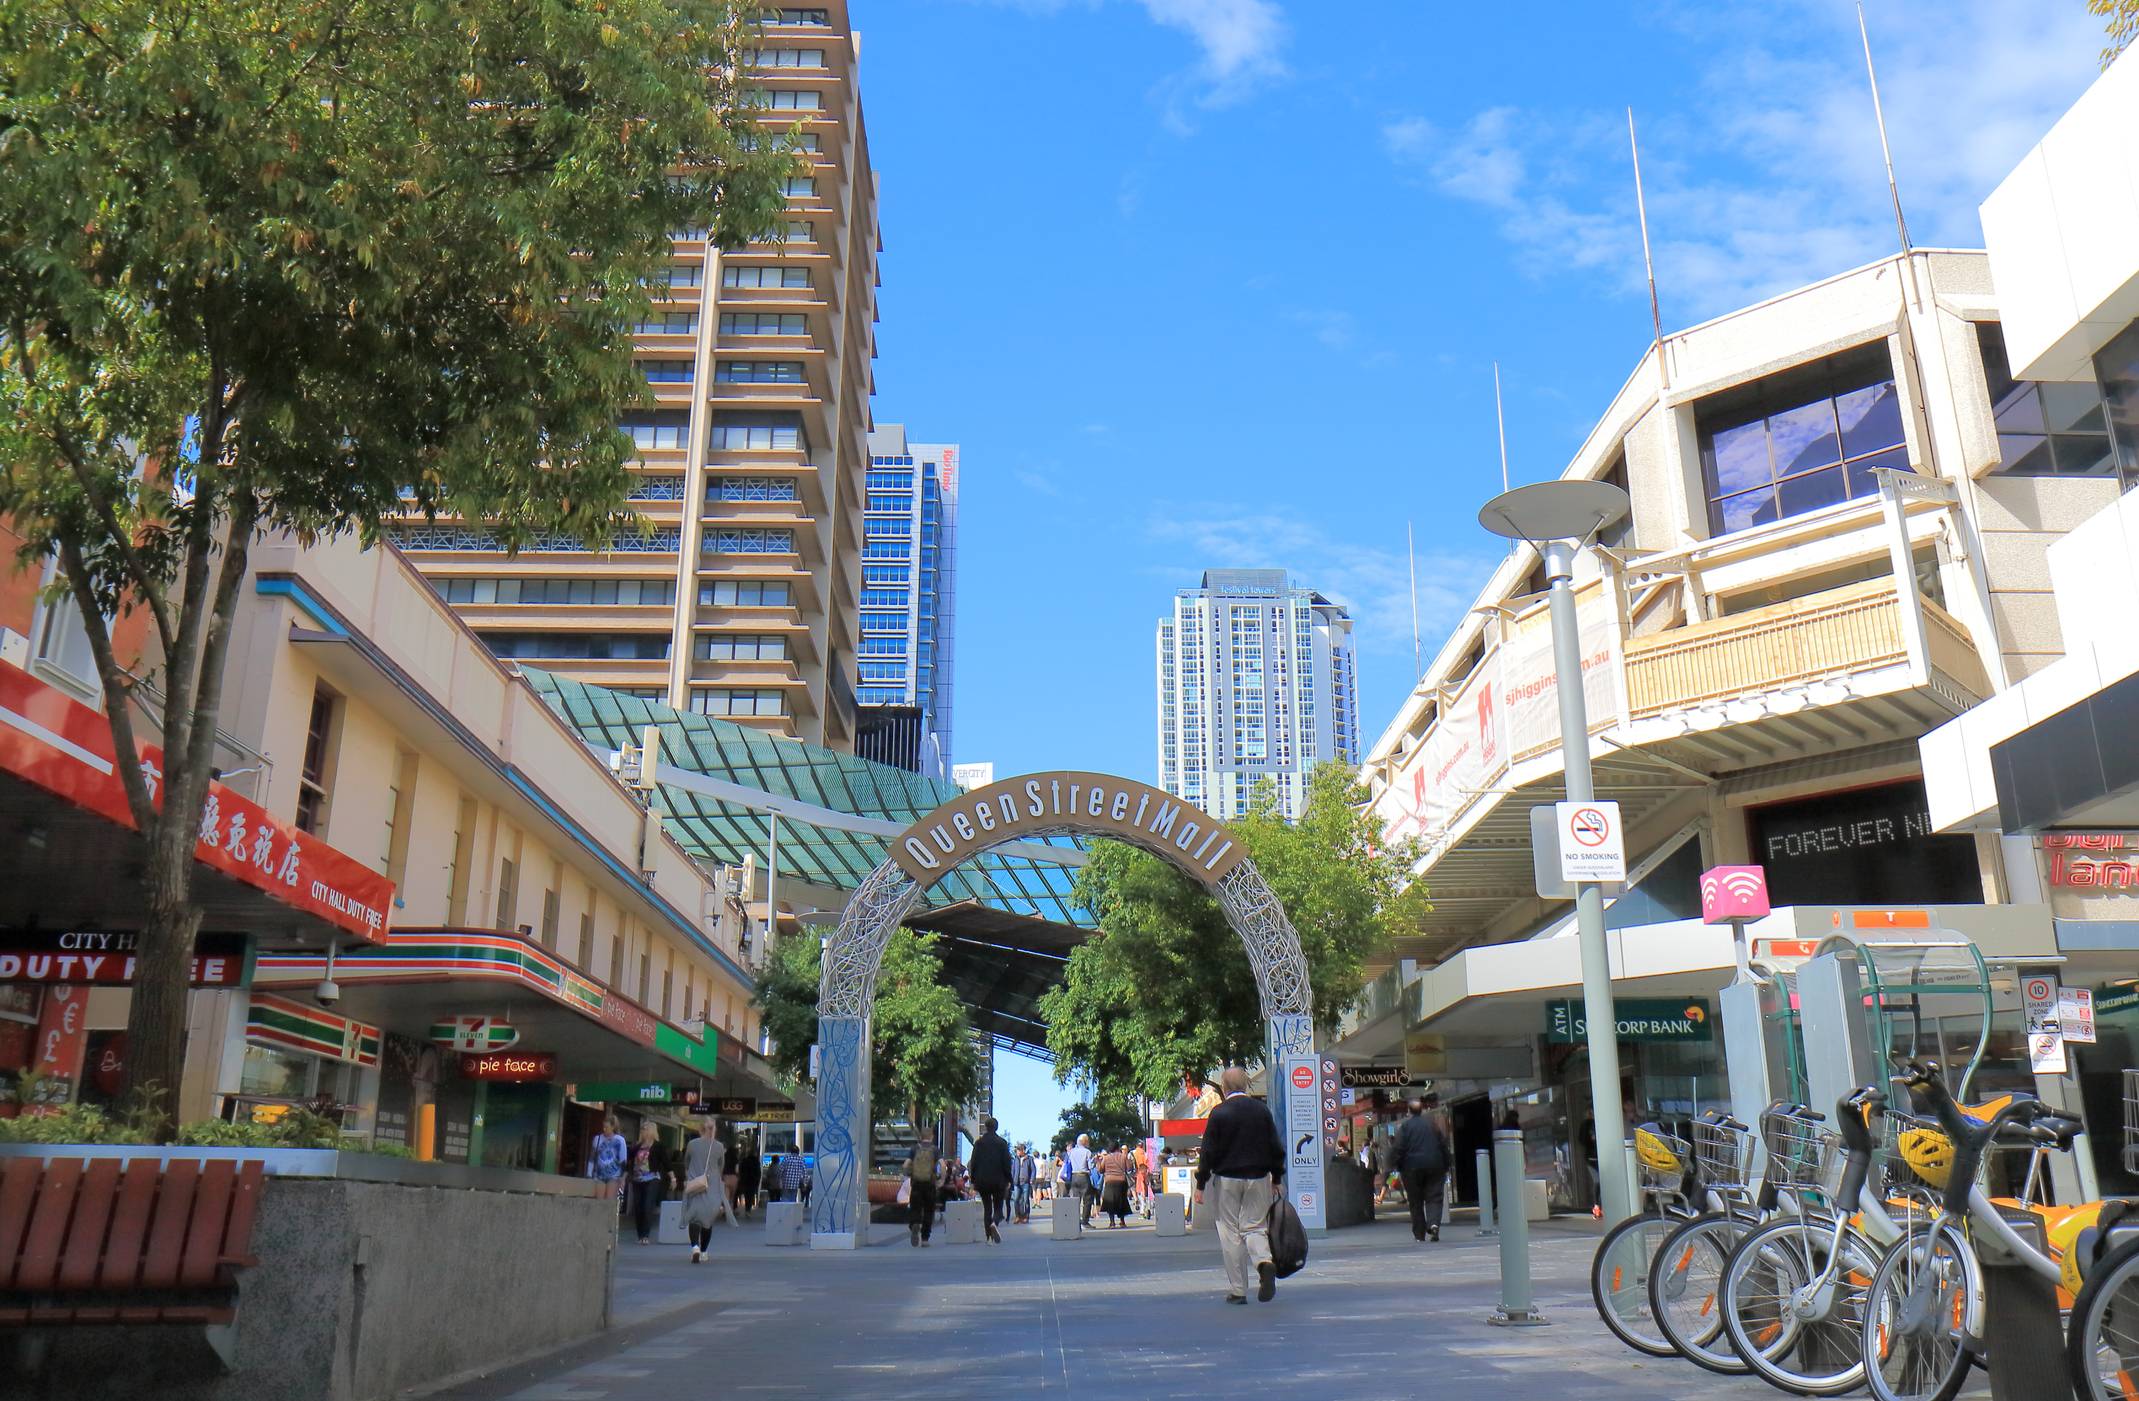 Lord Mayor 'leads by example' to revitalise Brisbane CBD ghost town